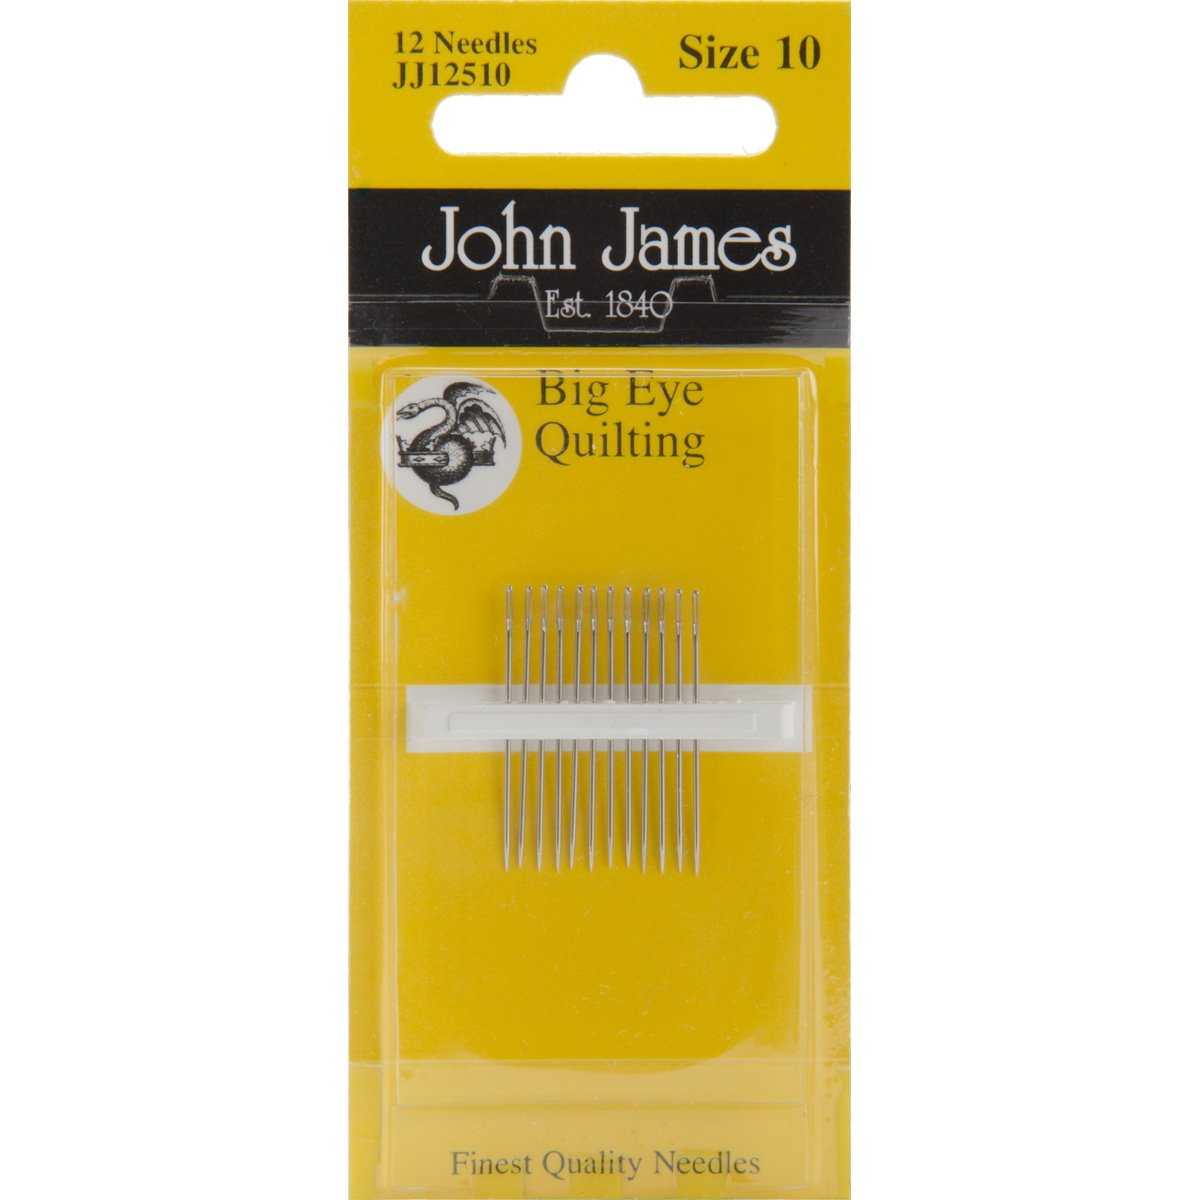 Big Eye Quilting Hand Needles-Size 10 12/Pkg Colonial Needle JJ125-10